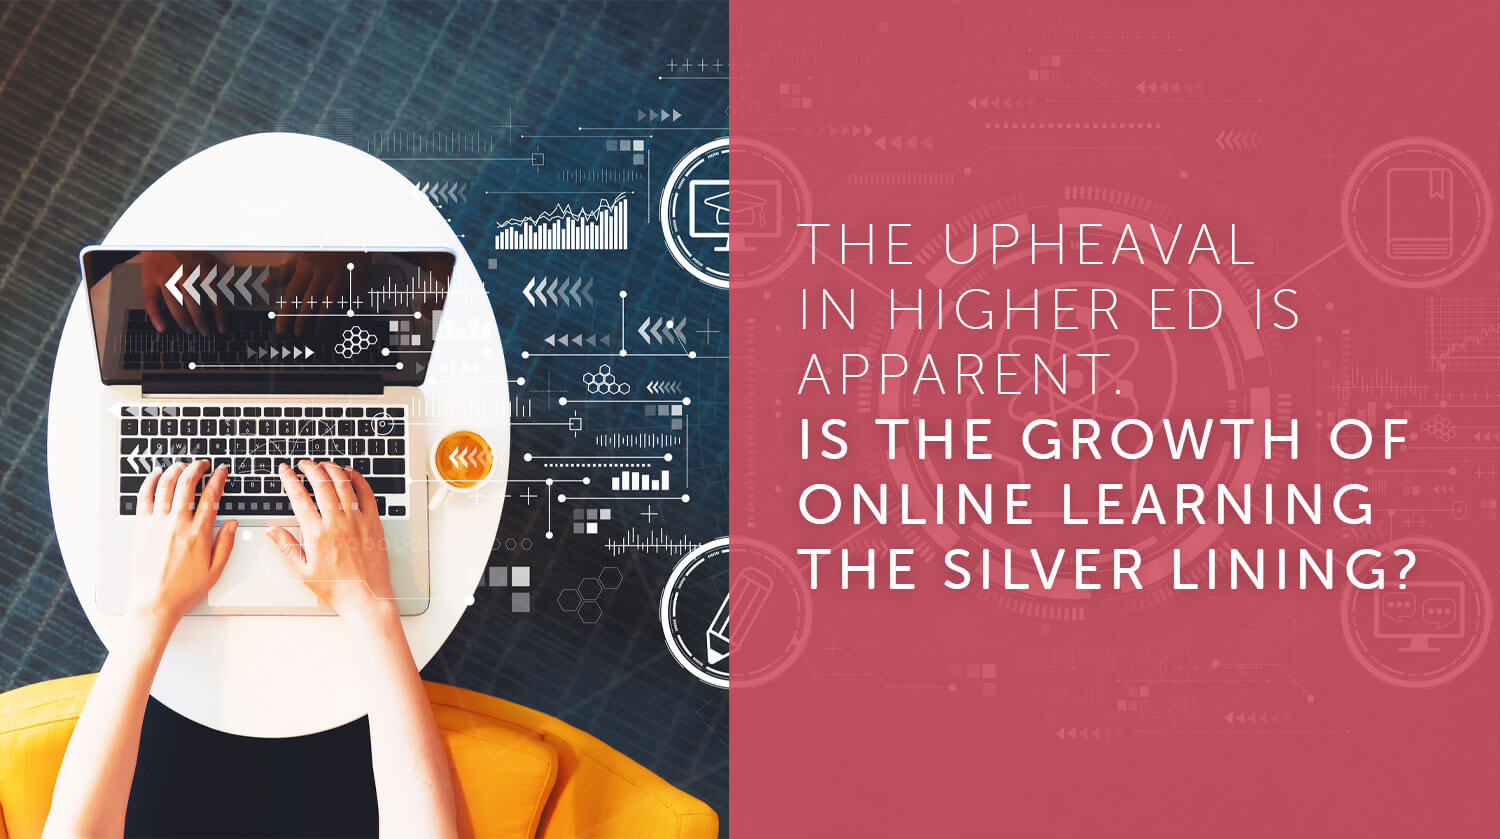 The upheaval in higher ed is apparent. Is the growth of online learning the silver lining?